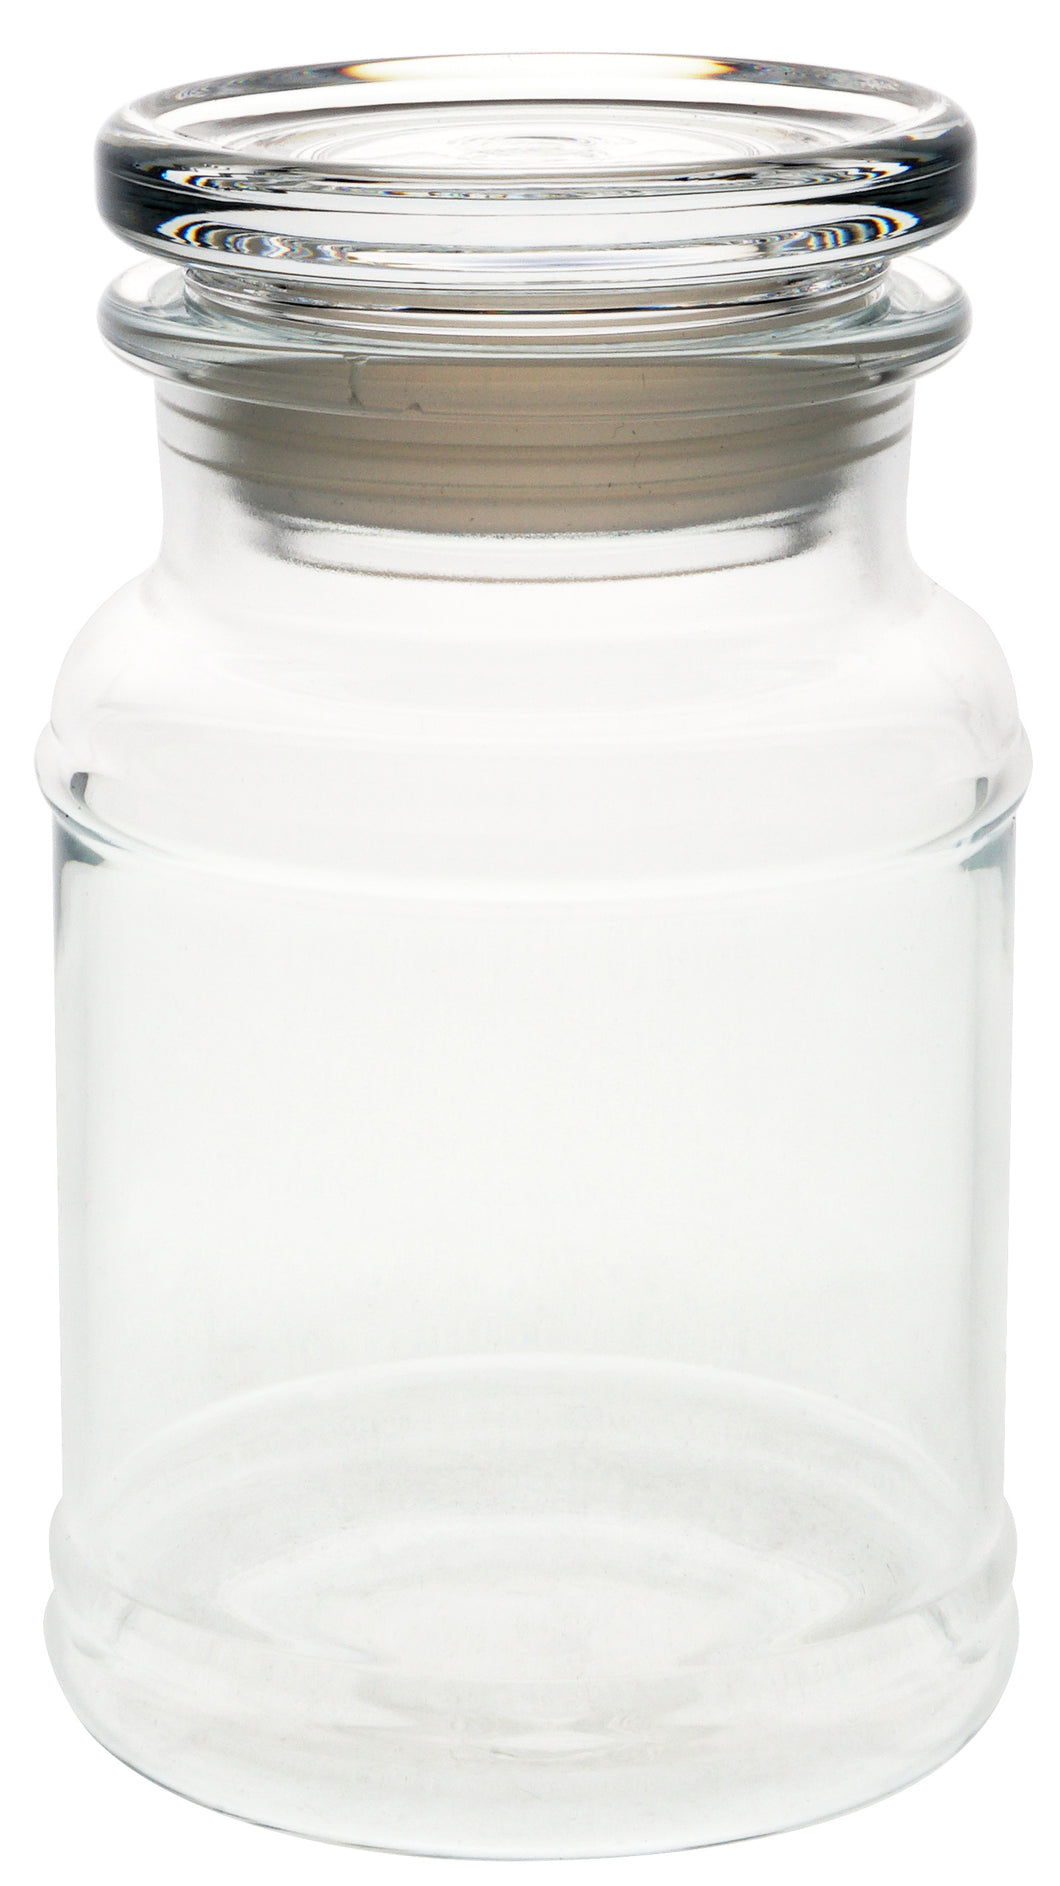 Unbreakable Storage jar 10